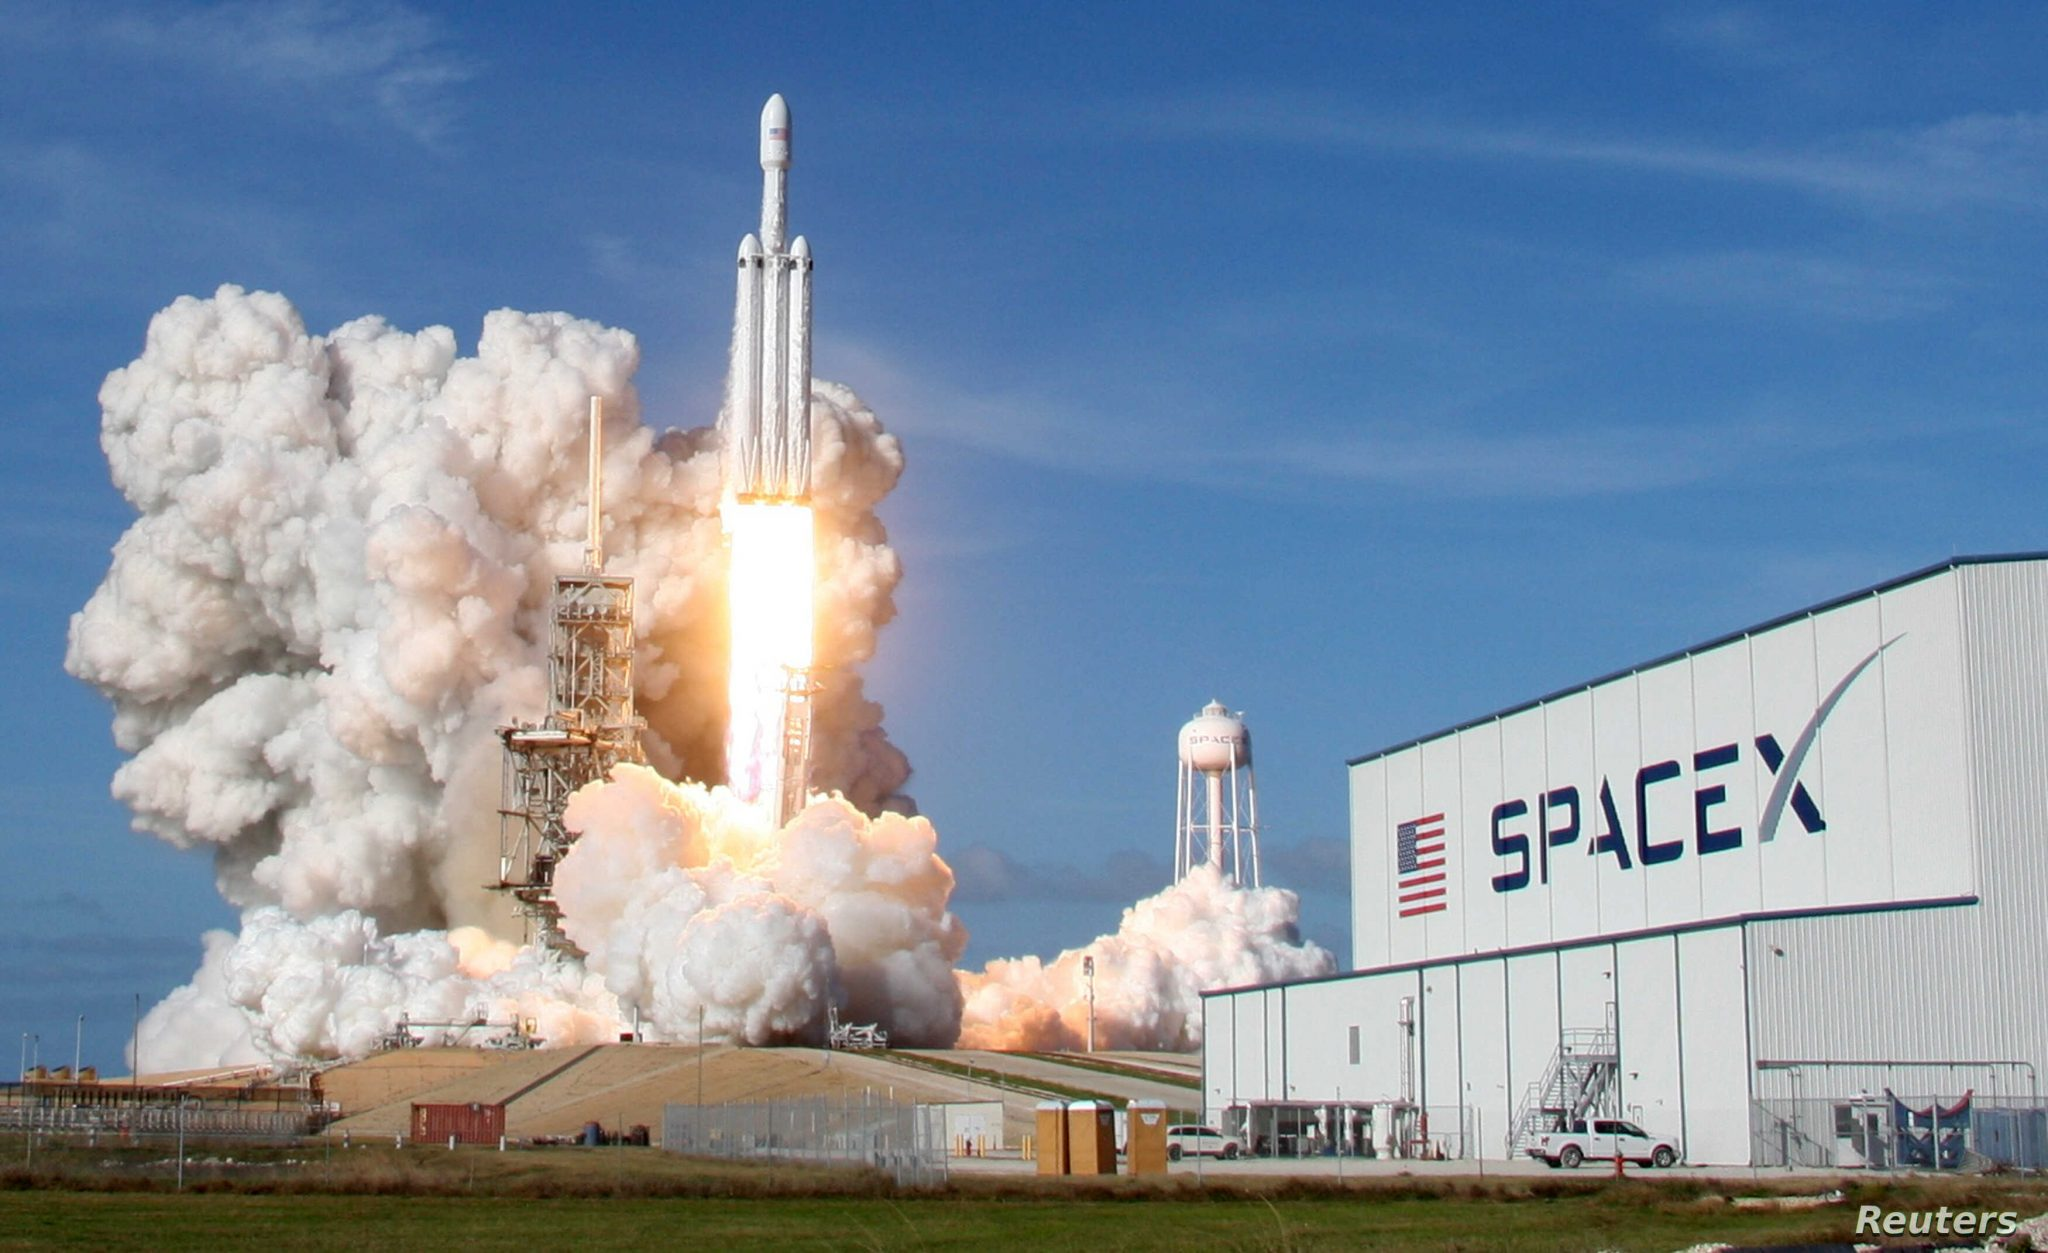 SpaceX prototype Starship rocket explodes after test in Texas